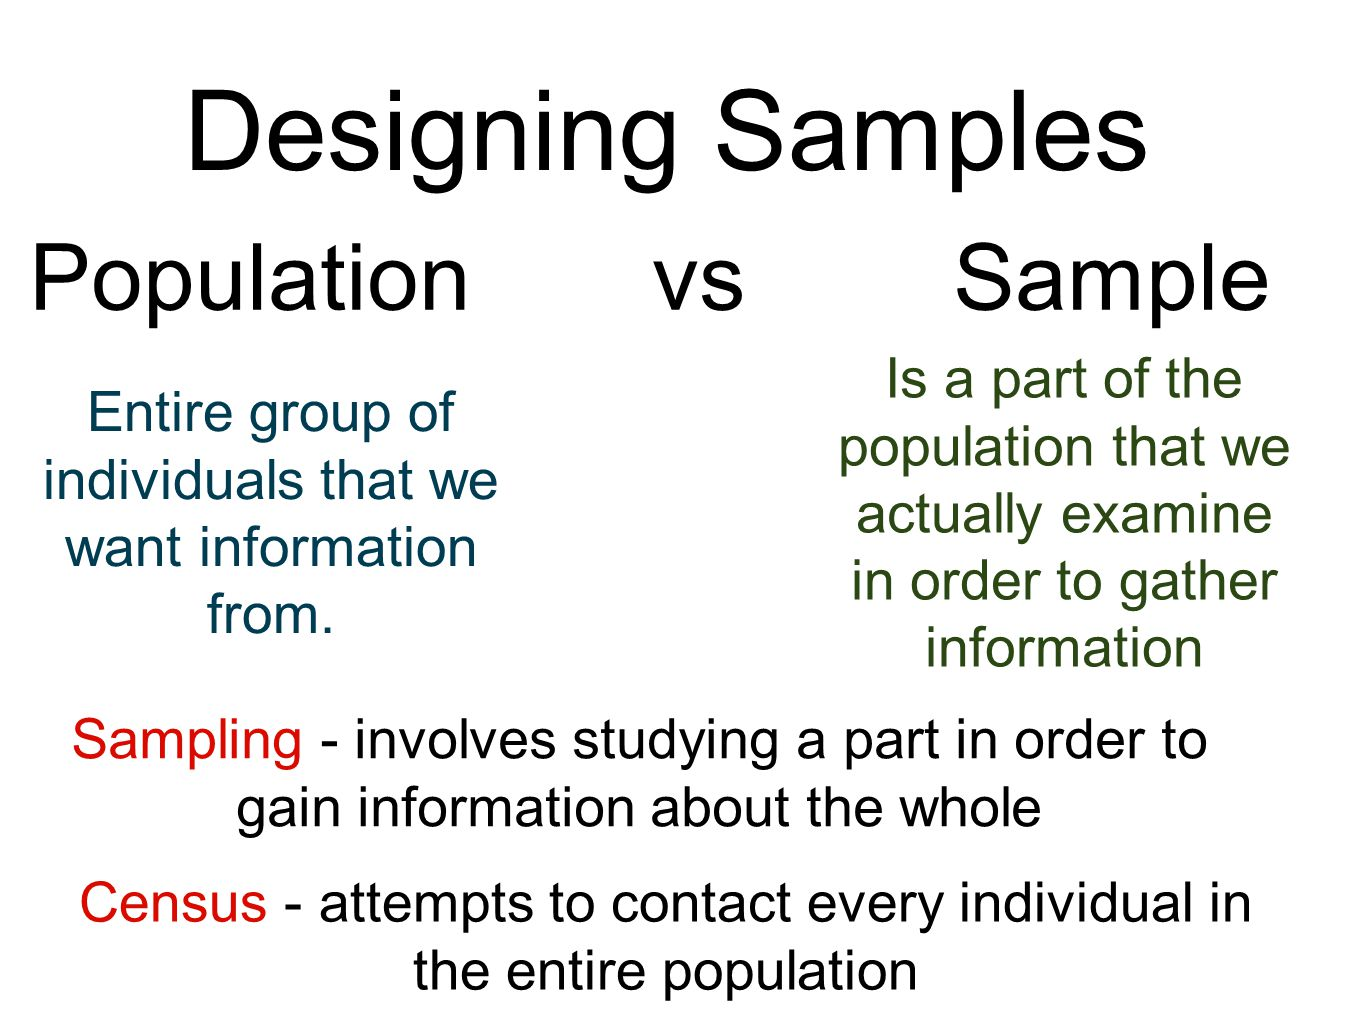 Designing Samples Population vs Sample Is a part of the population that we actually examine in order to gather information Entire group of individuals